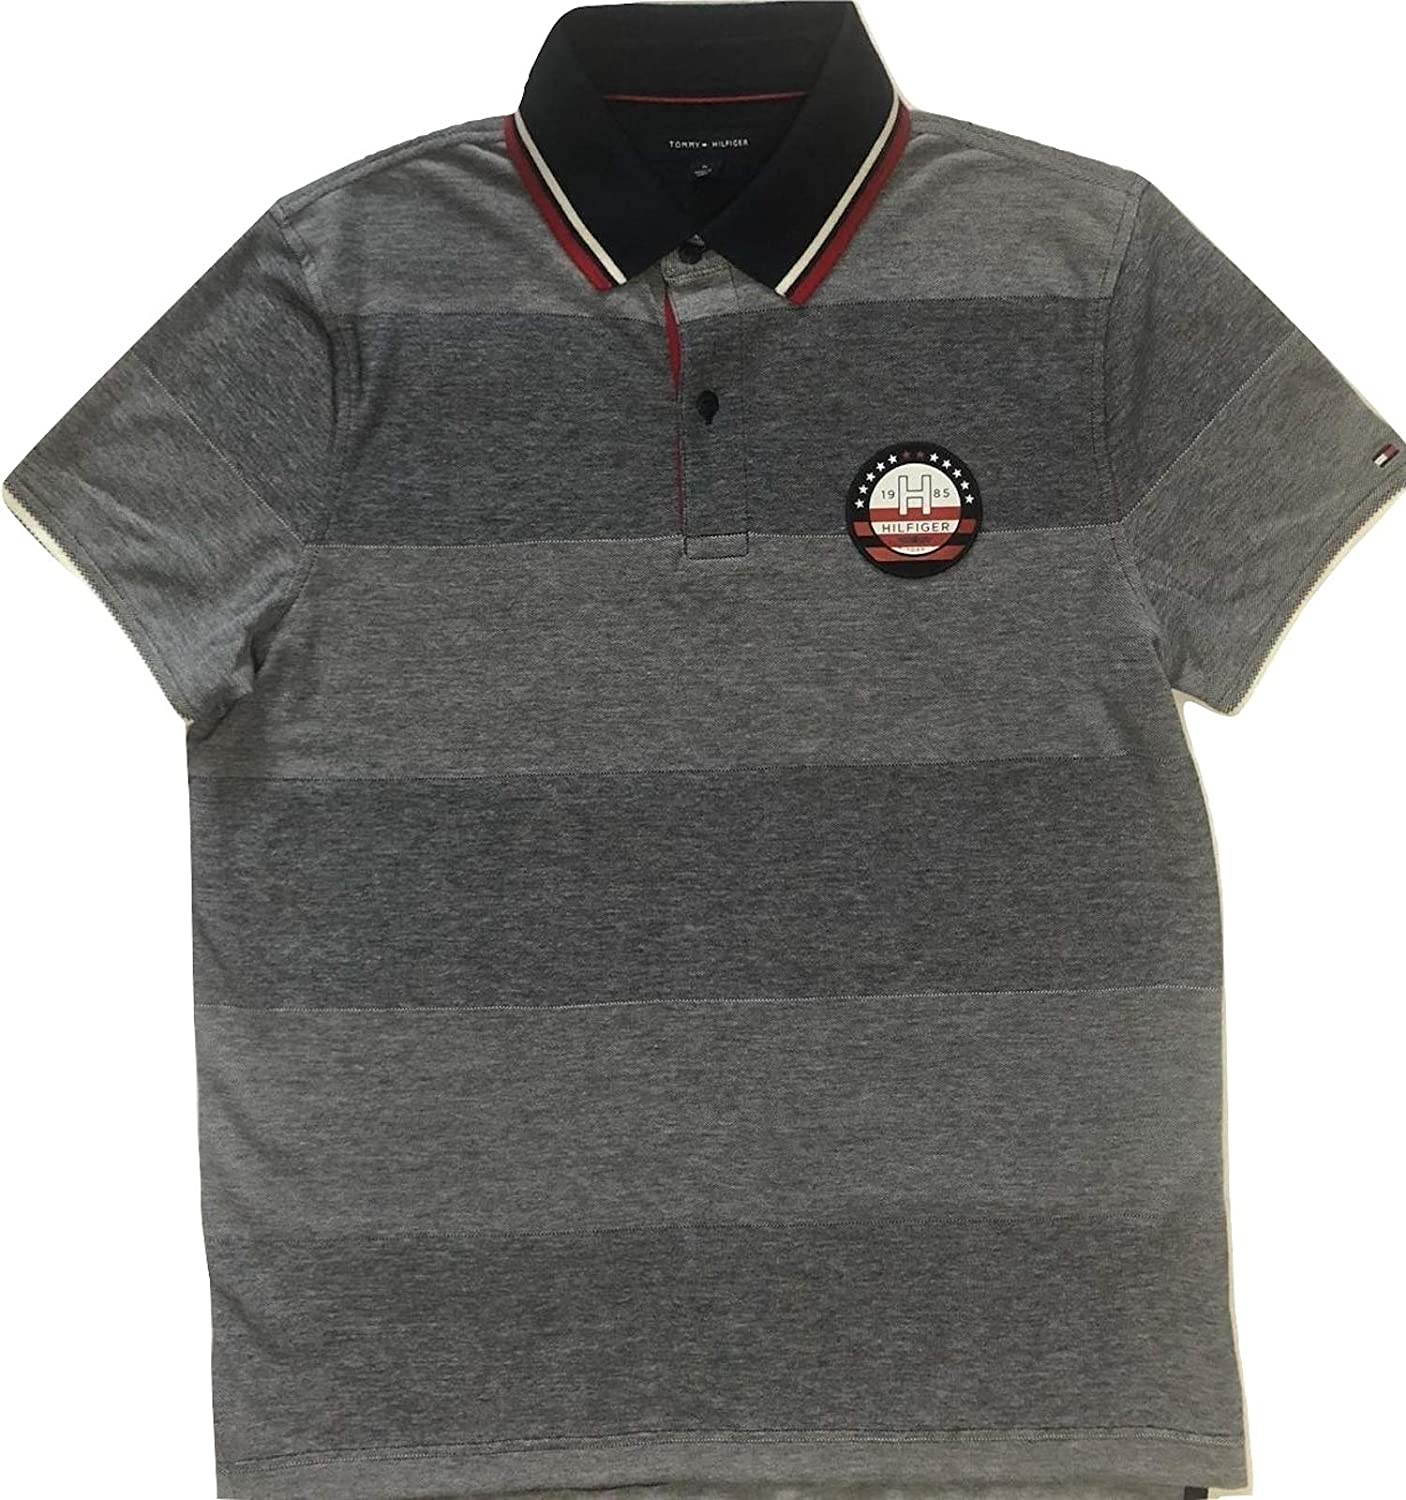 a2dee4fc Tommy Hilfiger Polo Shirts Usa | Top Mode Depot